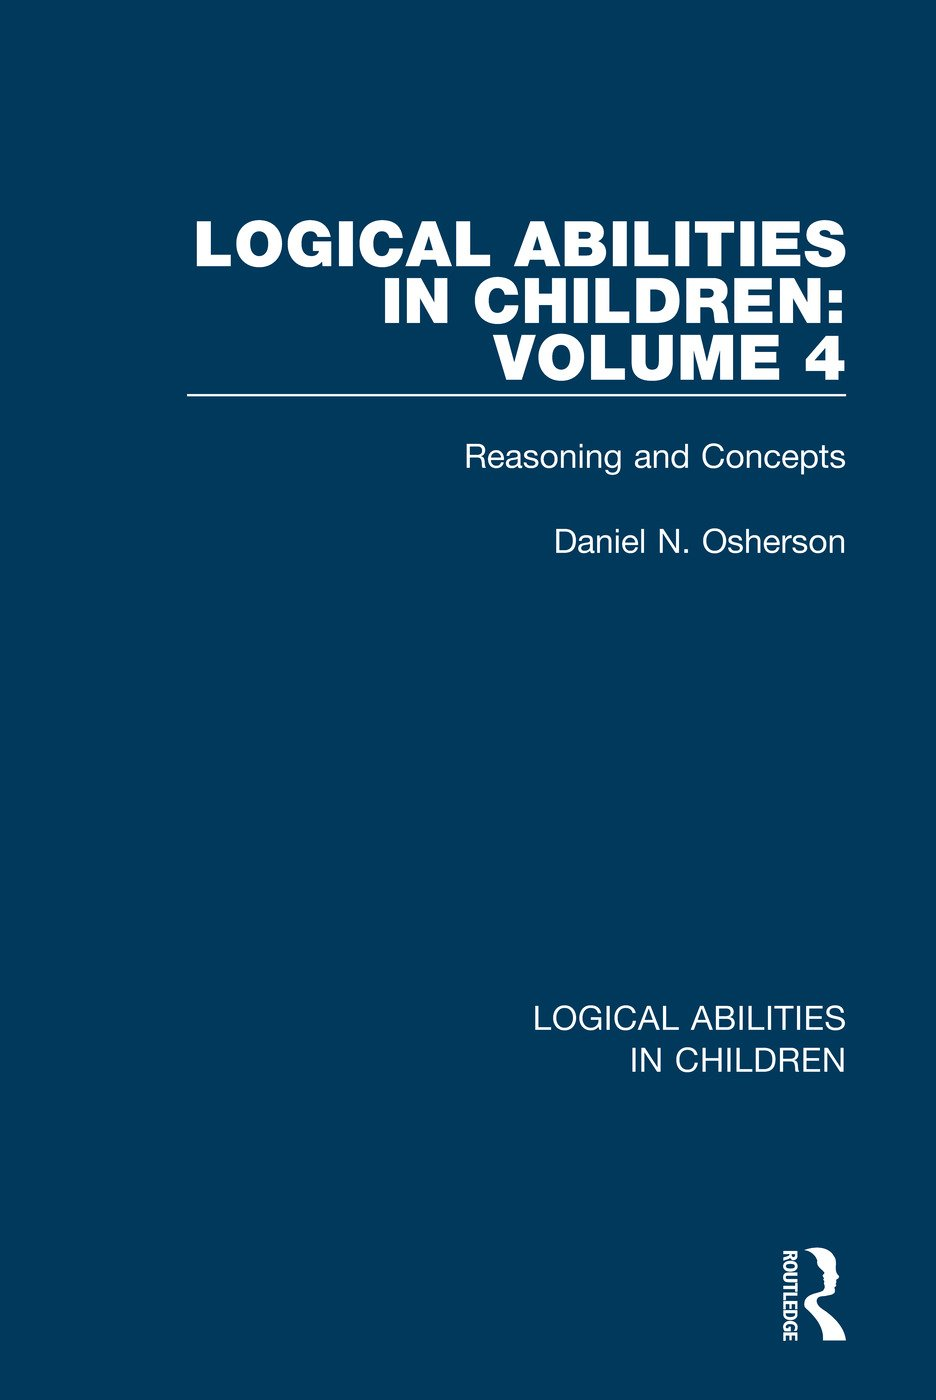 Logical Abilities in Children: Volume 4: Reasoning and Concepts book cover